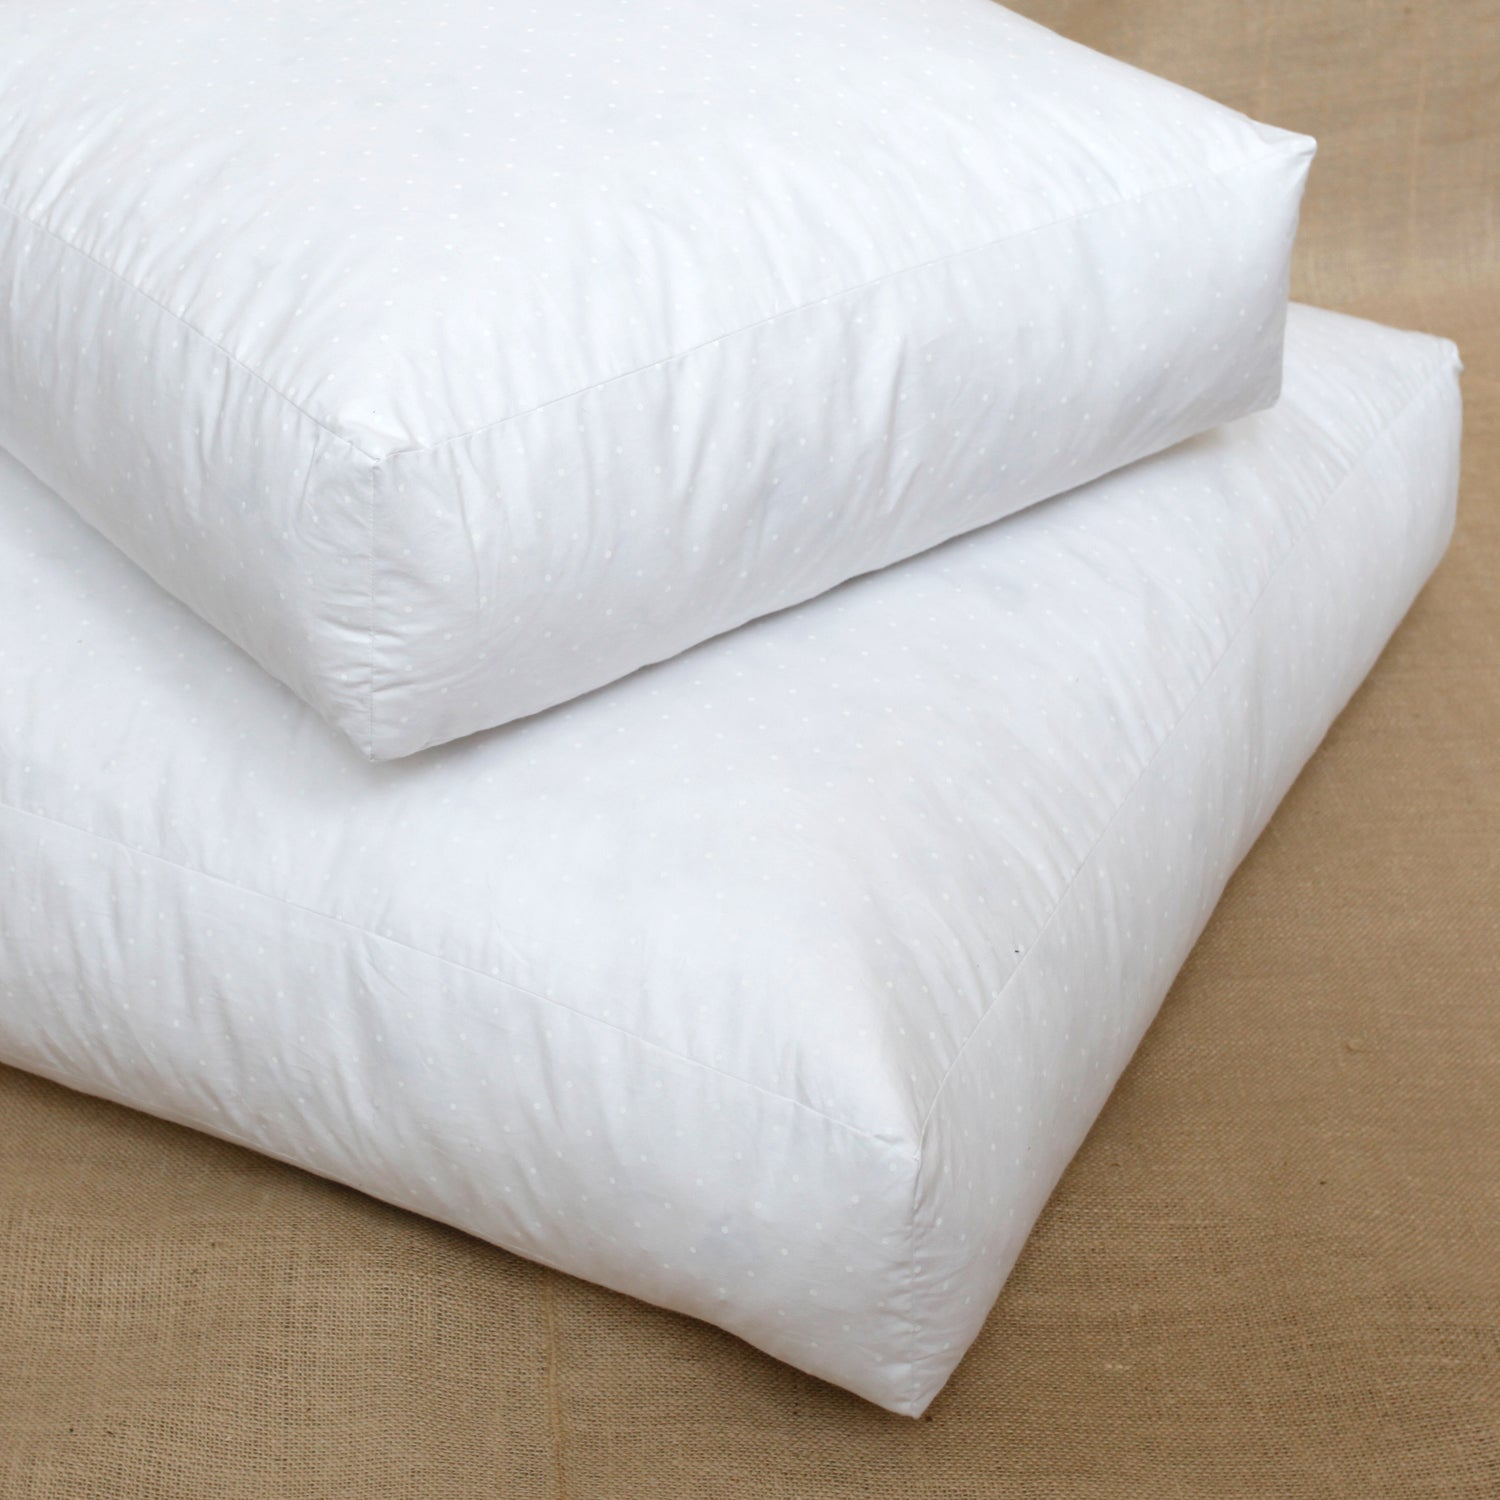 Giant 36-inch Floor Cushion Pillow - Overstock Shopping - Great Deals on Down Pillows